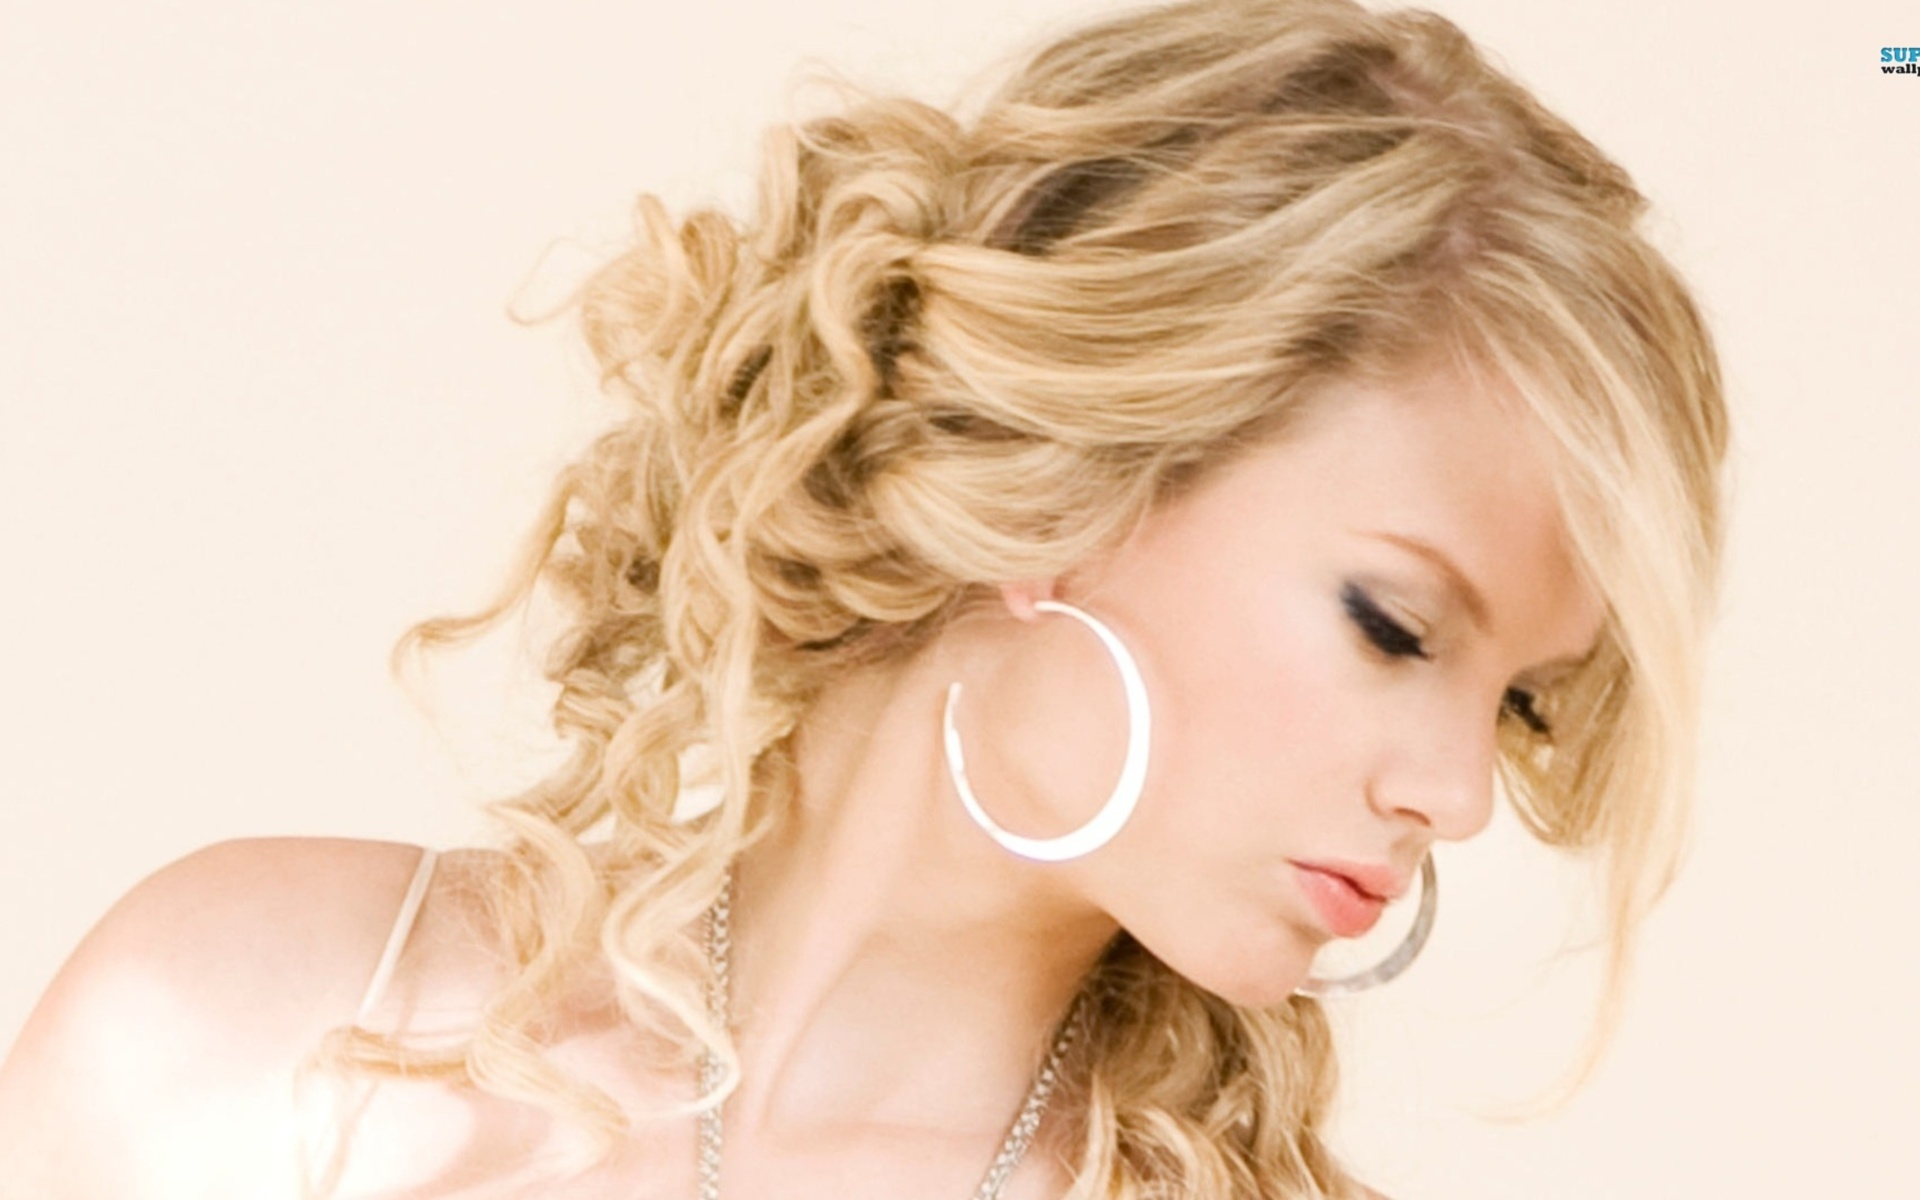 Music - Taylor Swift  - Beautiful Wallpaper